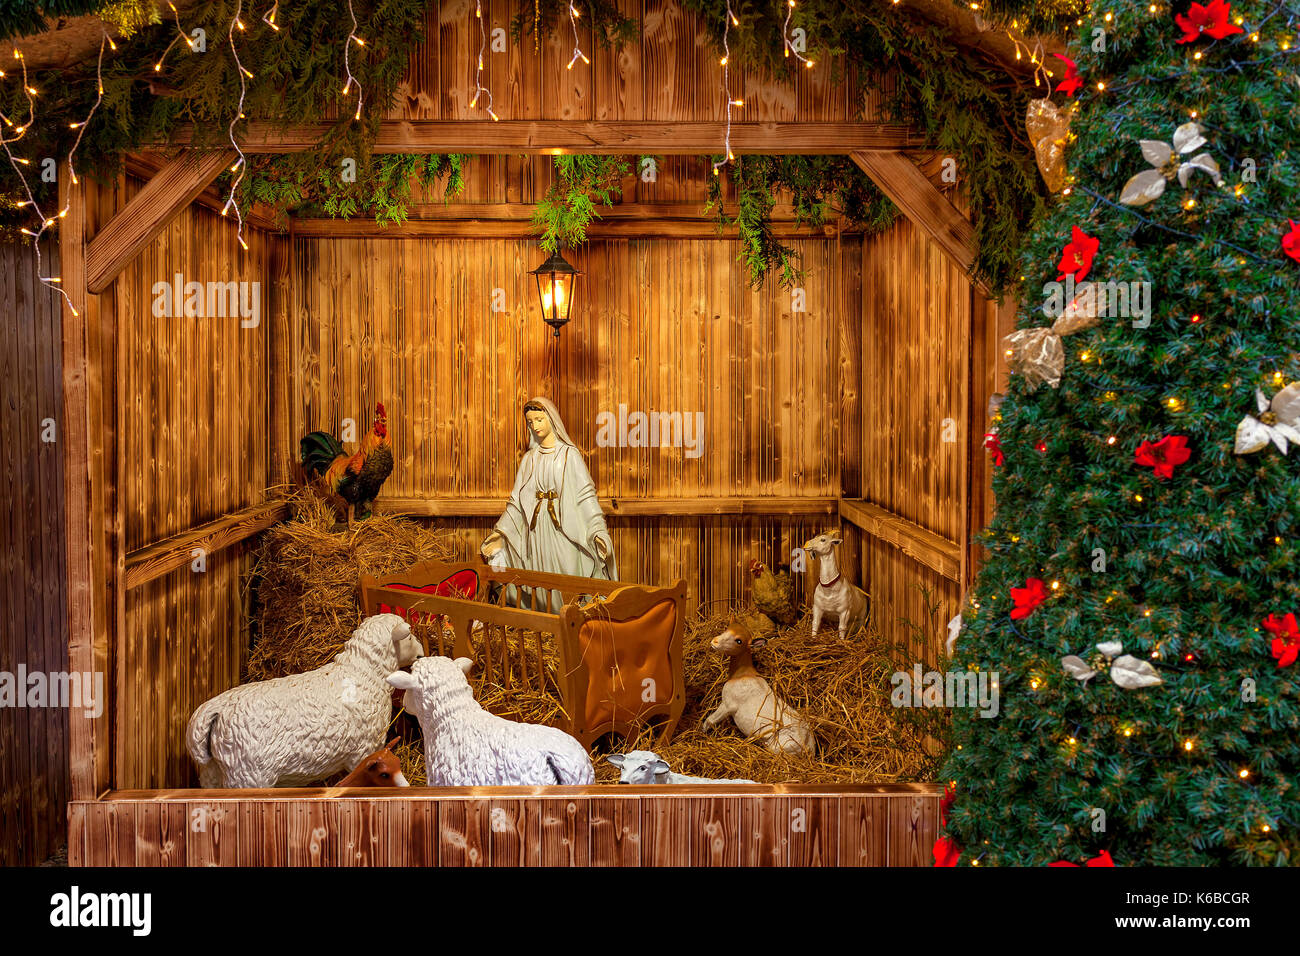 Nativity scene exposed in Old Town of Prague, Czech Republic in anticipation of Christmas. - Stock Image